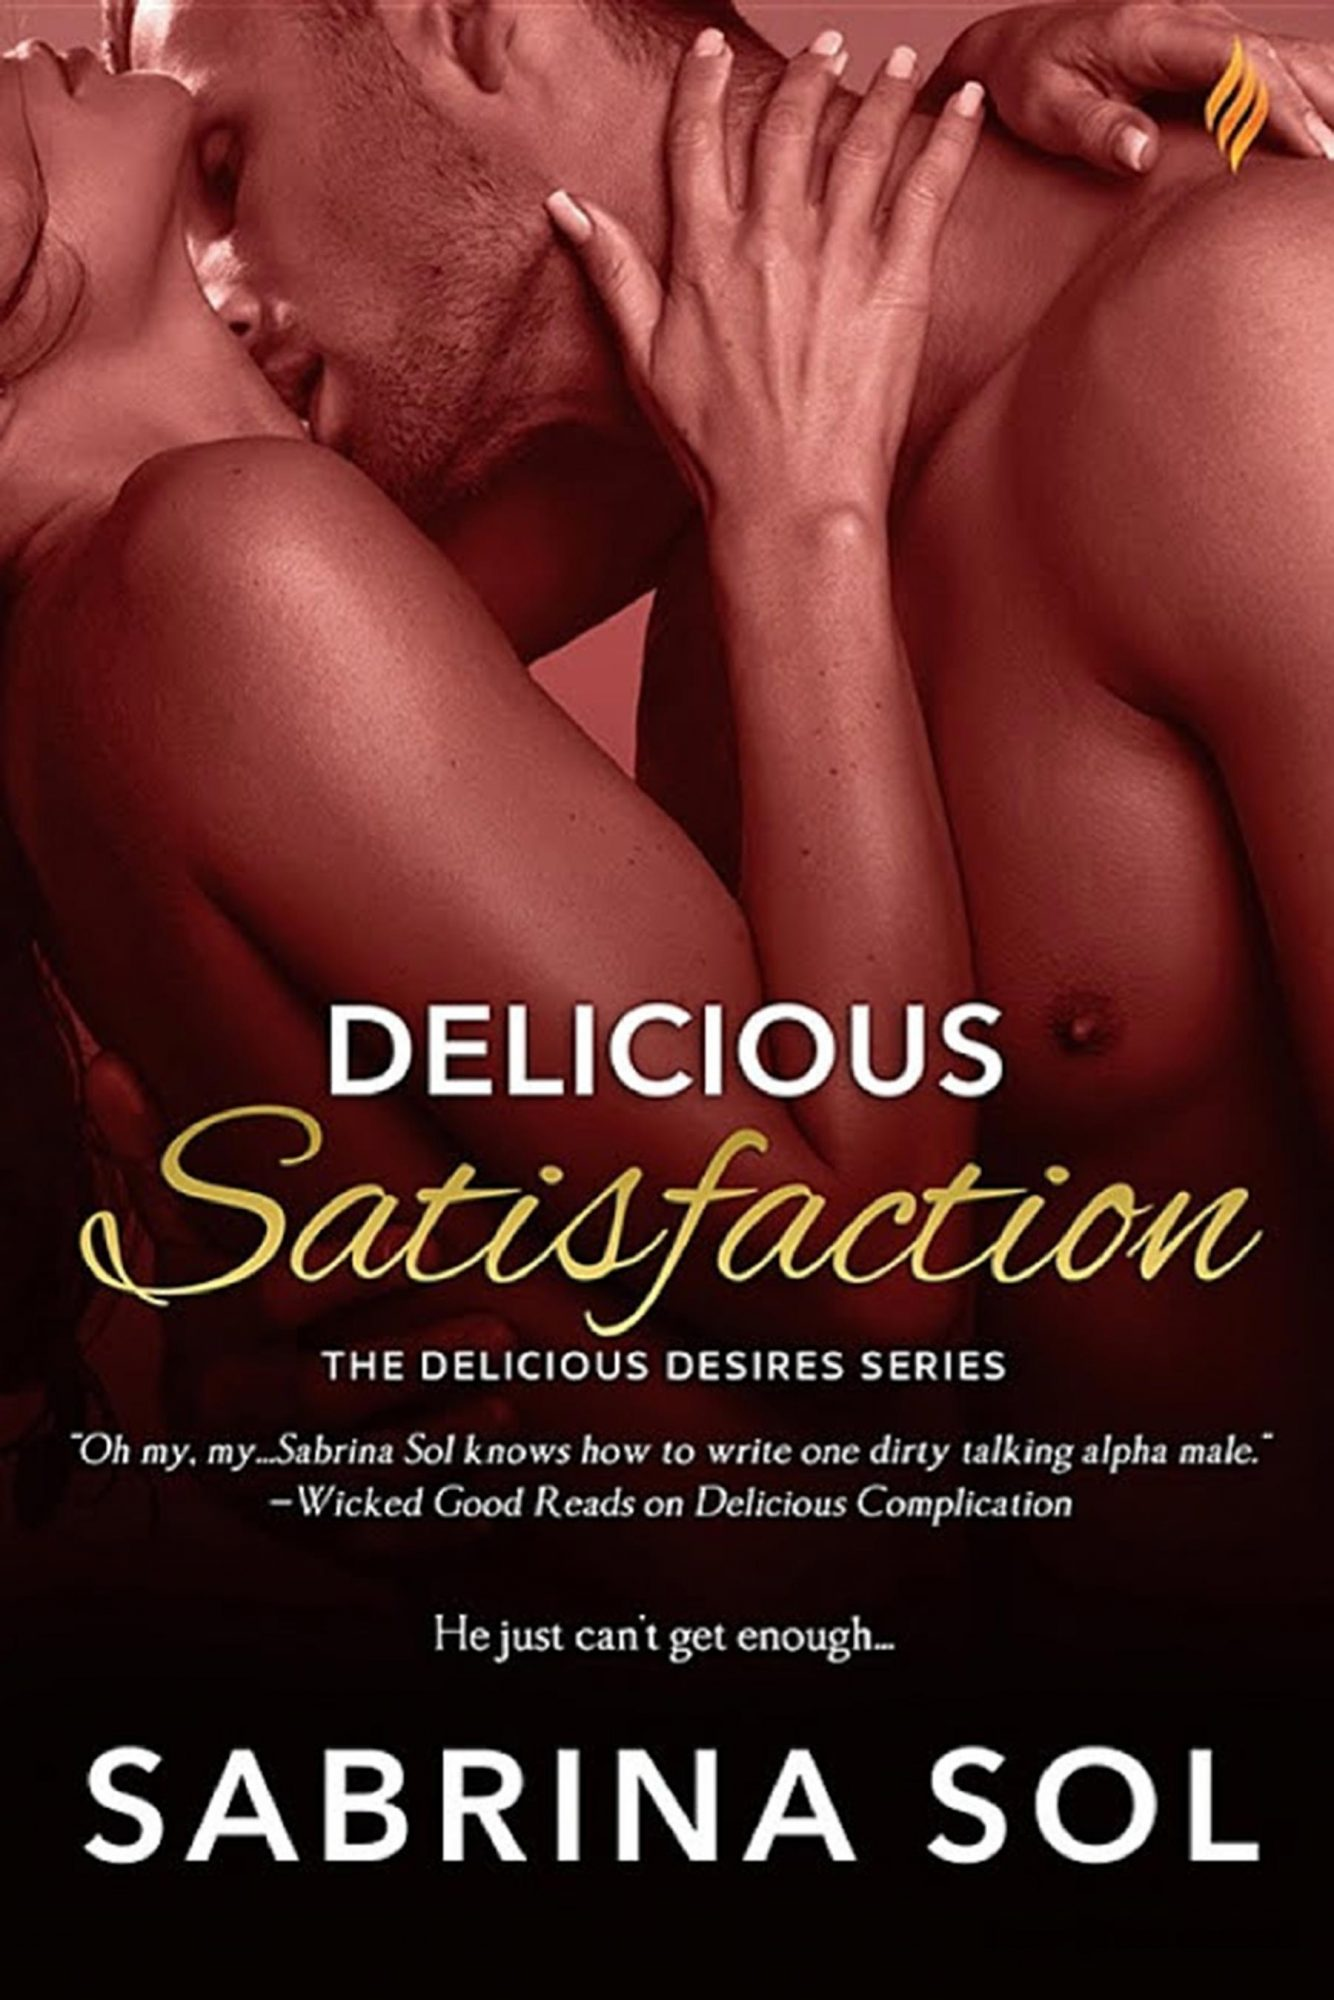 Delicious SatisfactionBook by Sabrina SolCR: Macmillan